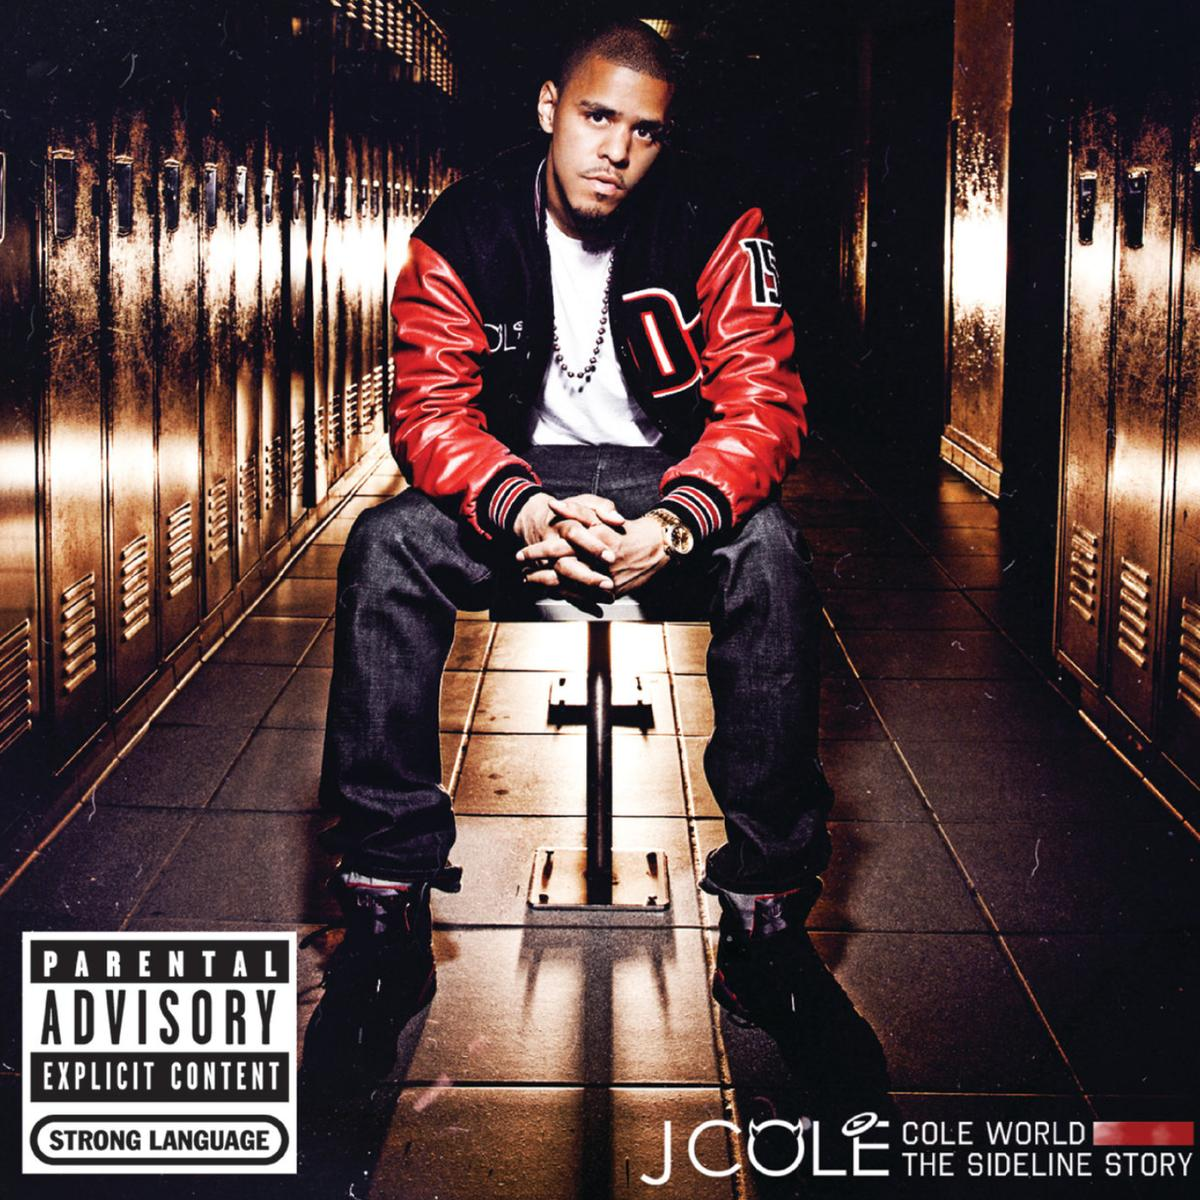 J. Cole/Roc Nation